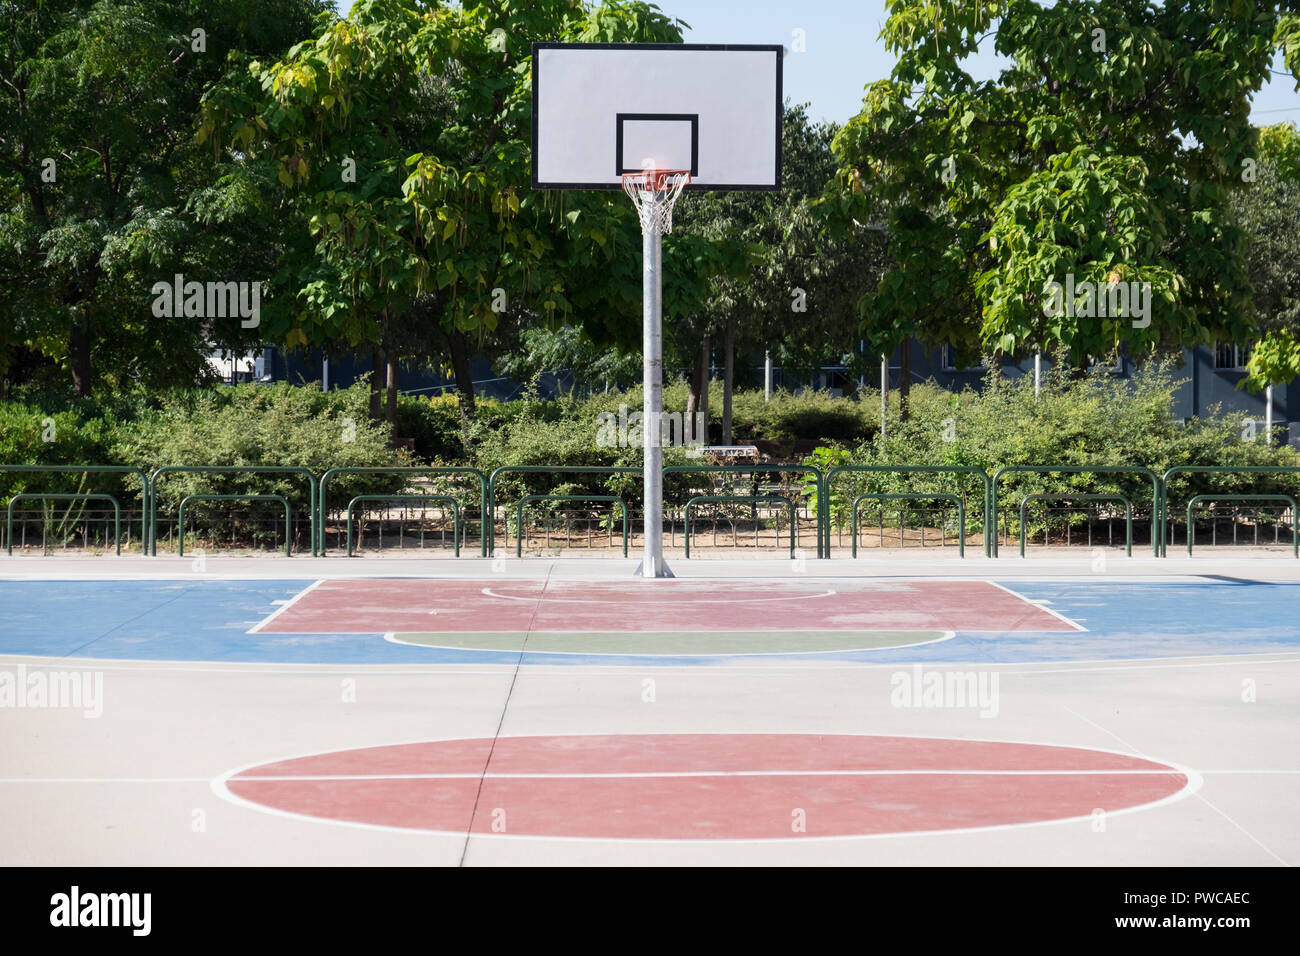 Basketball court in a park during midday in the summer with nobody. - Stock Image